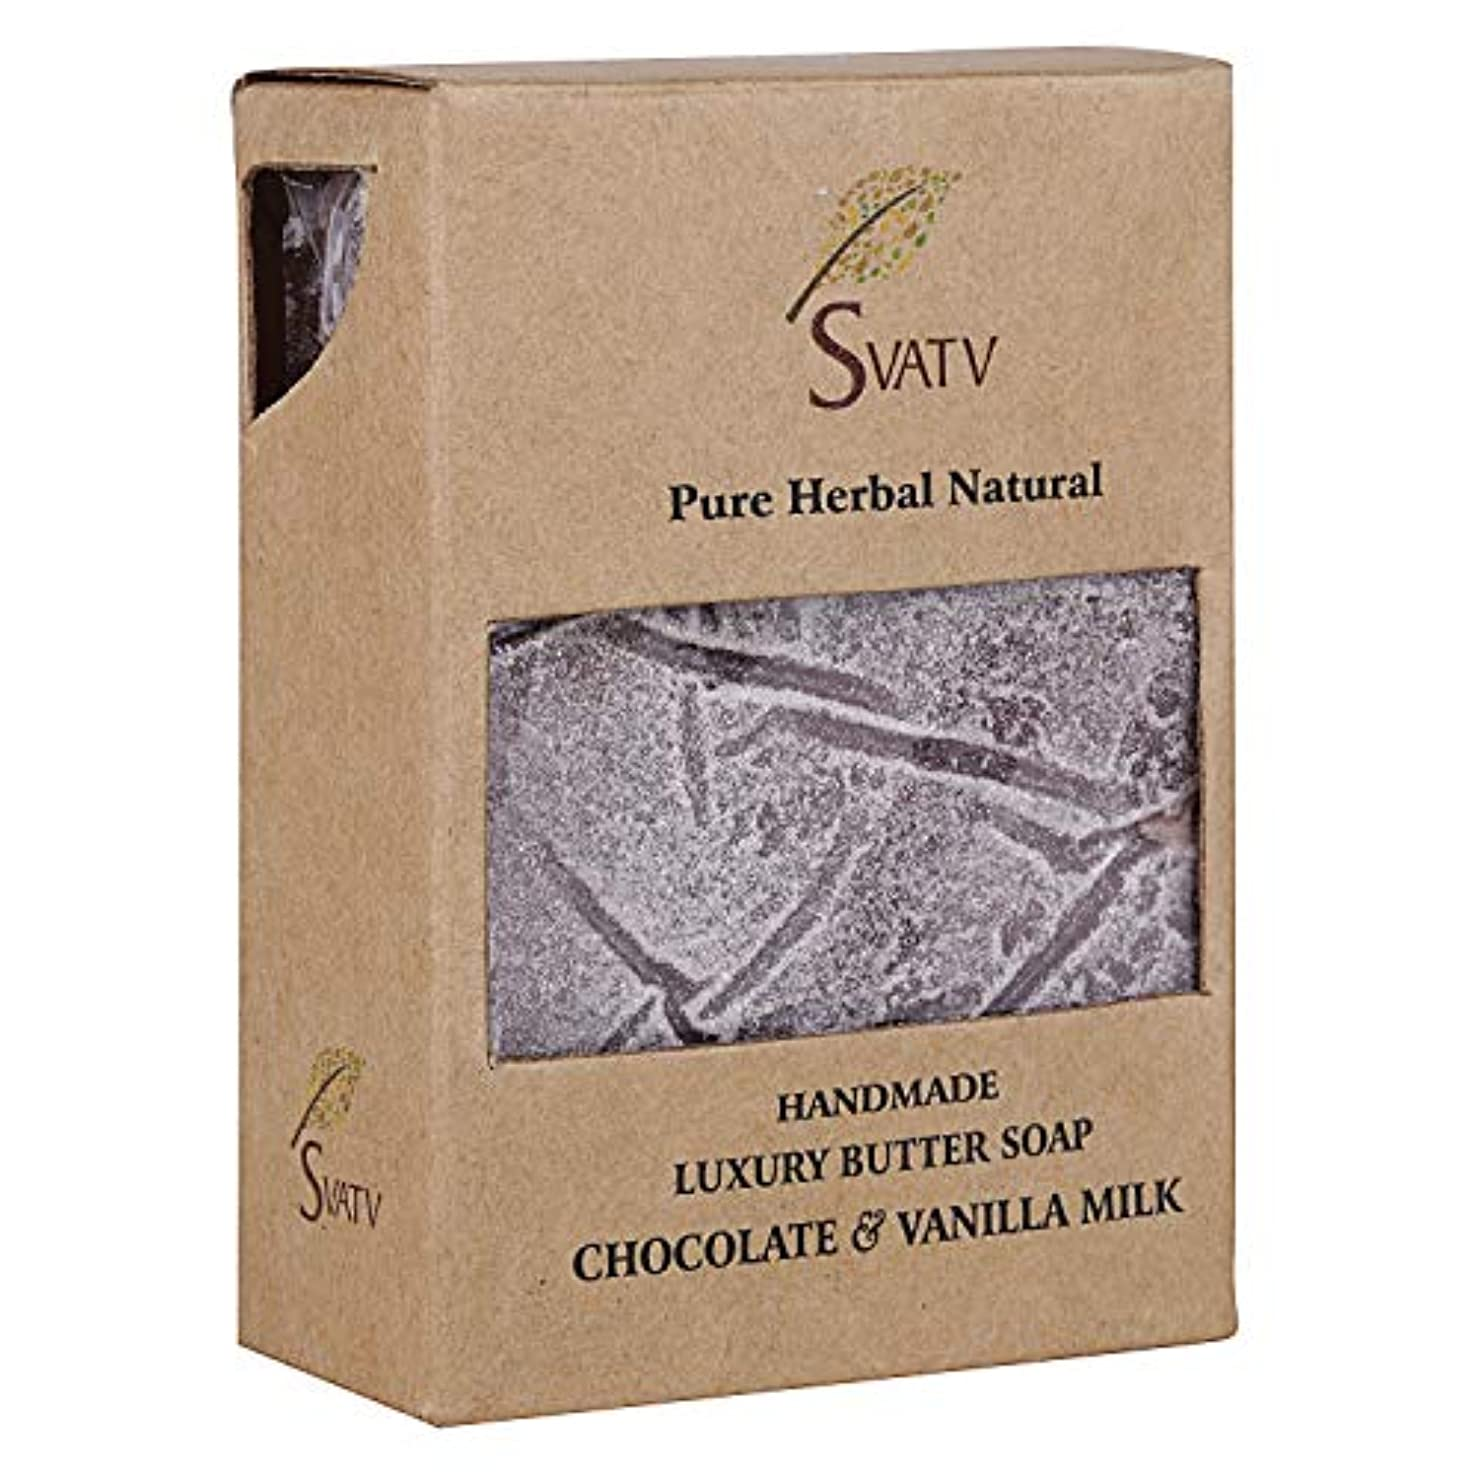 SVATV Handmade Luxury Butter Soap Chocolate & Vanilla Milk For All Skin types 100g Bar